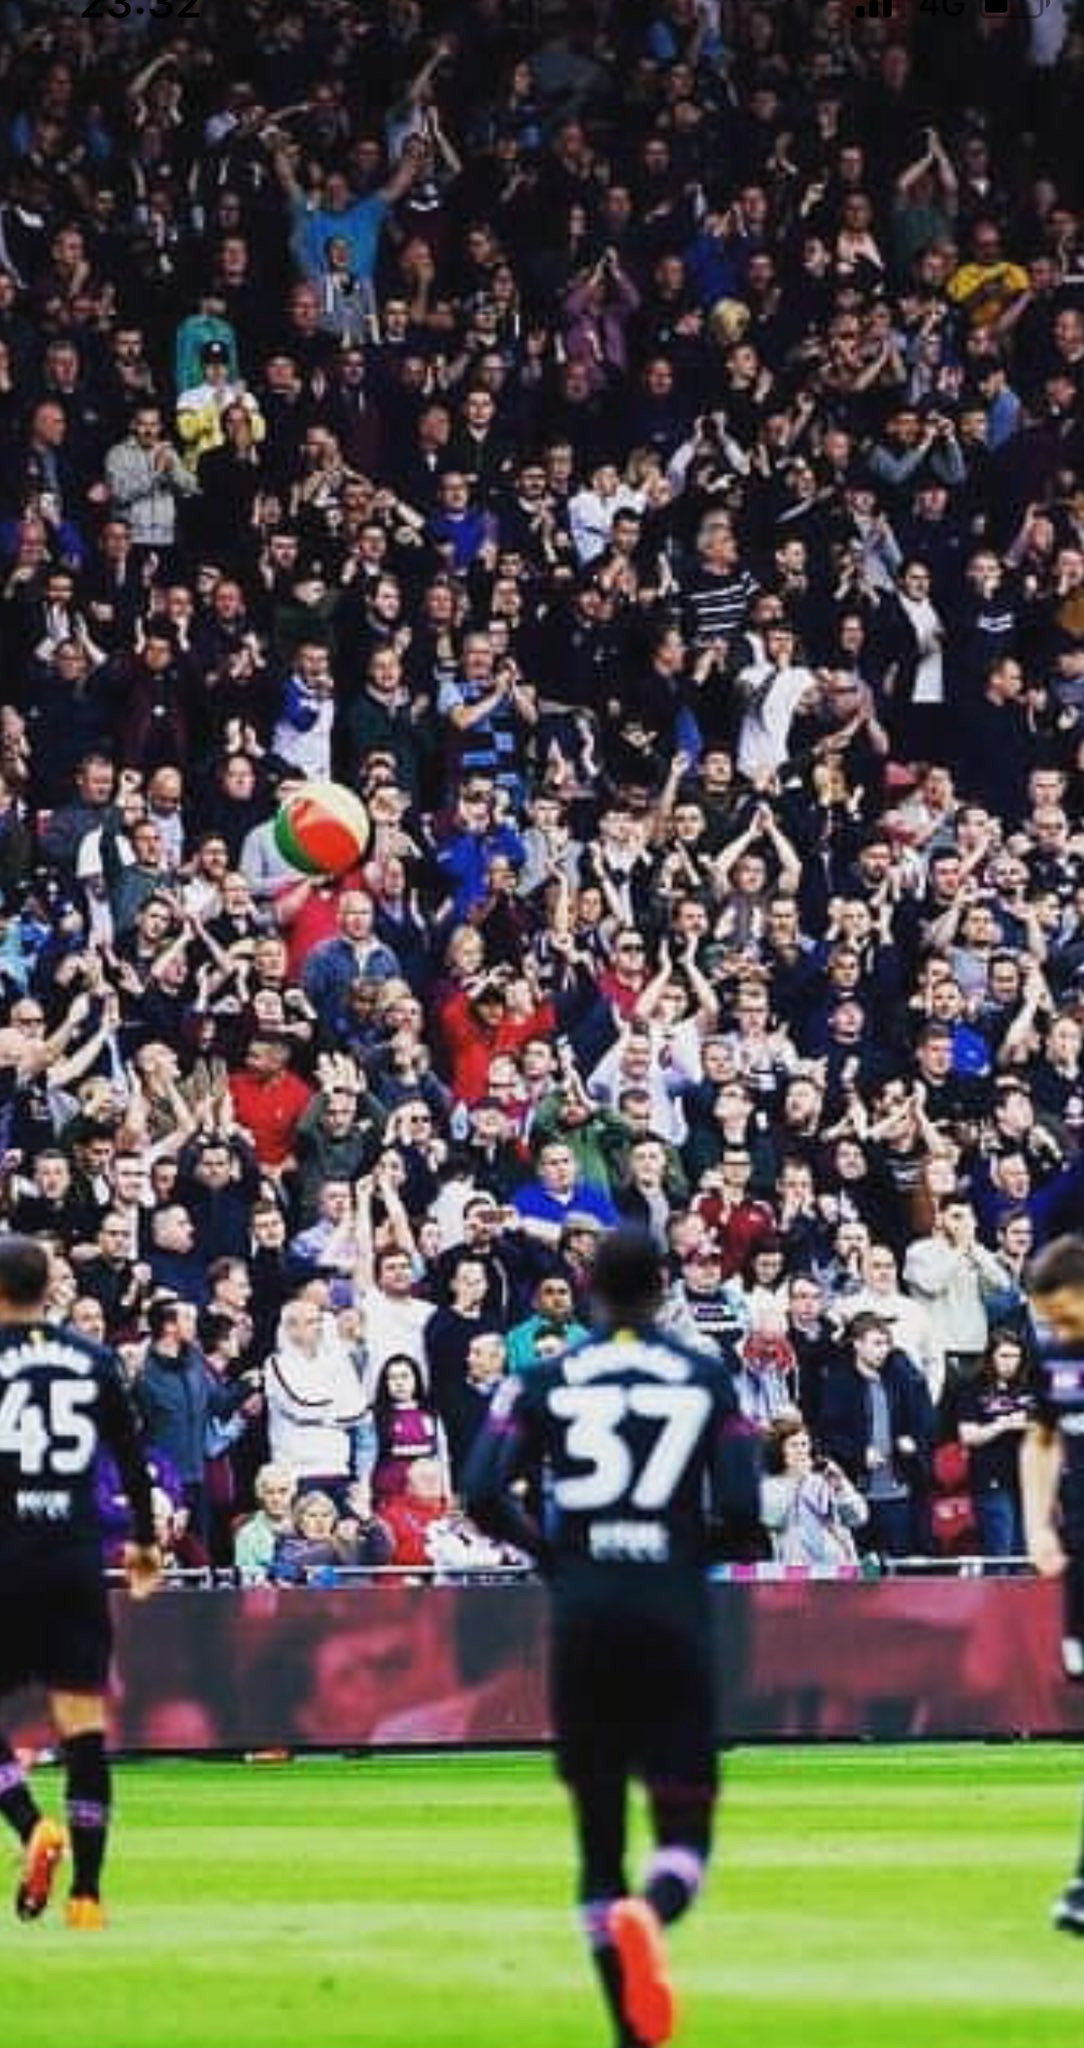 The travelling Holte. The best of the best.  Tuesday, make the foundations of the old place move.   #VTID https://t.co/aajGSs4paU